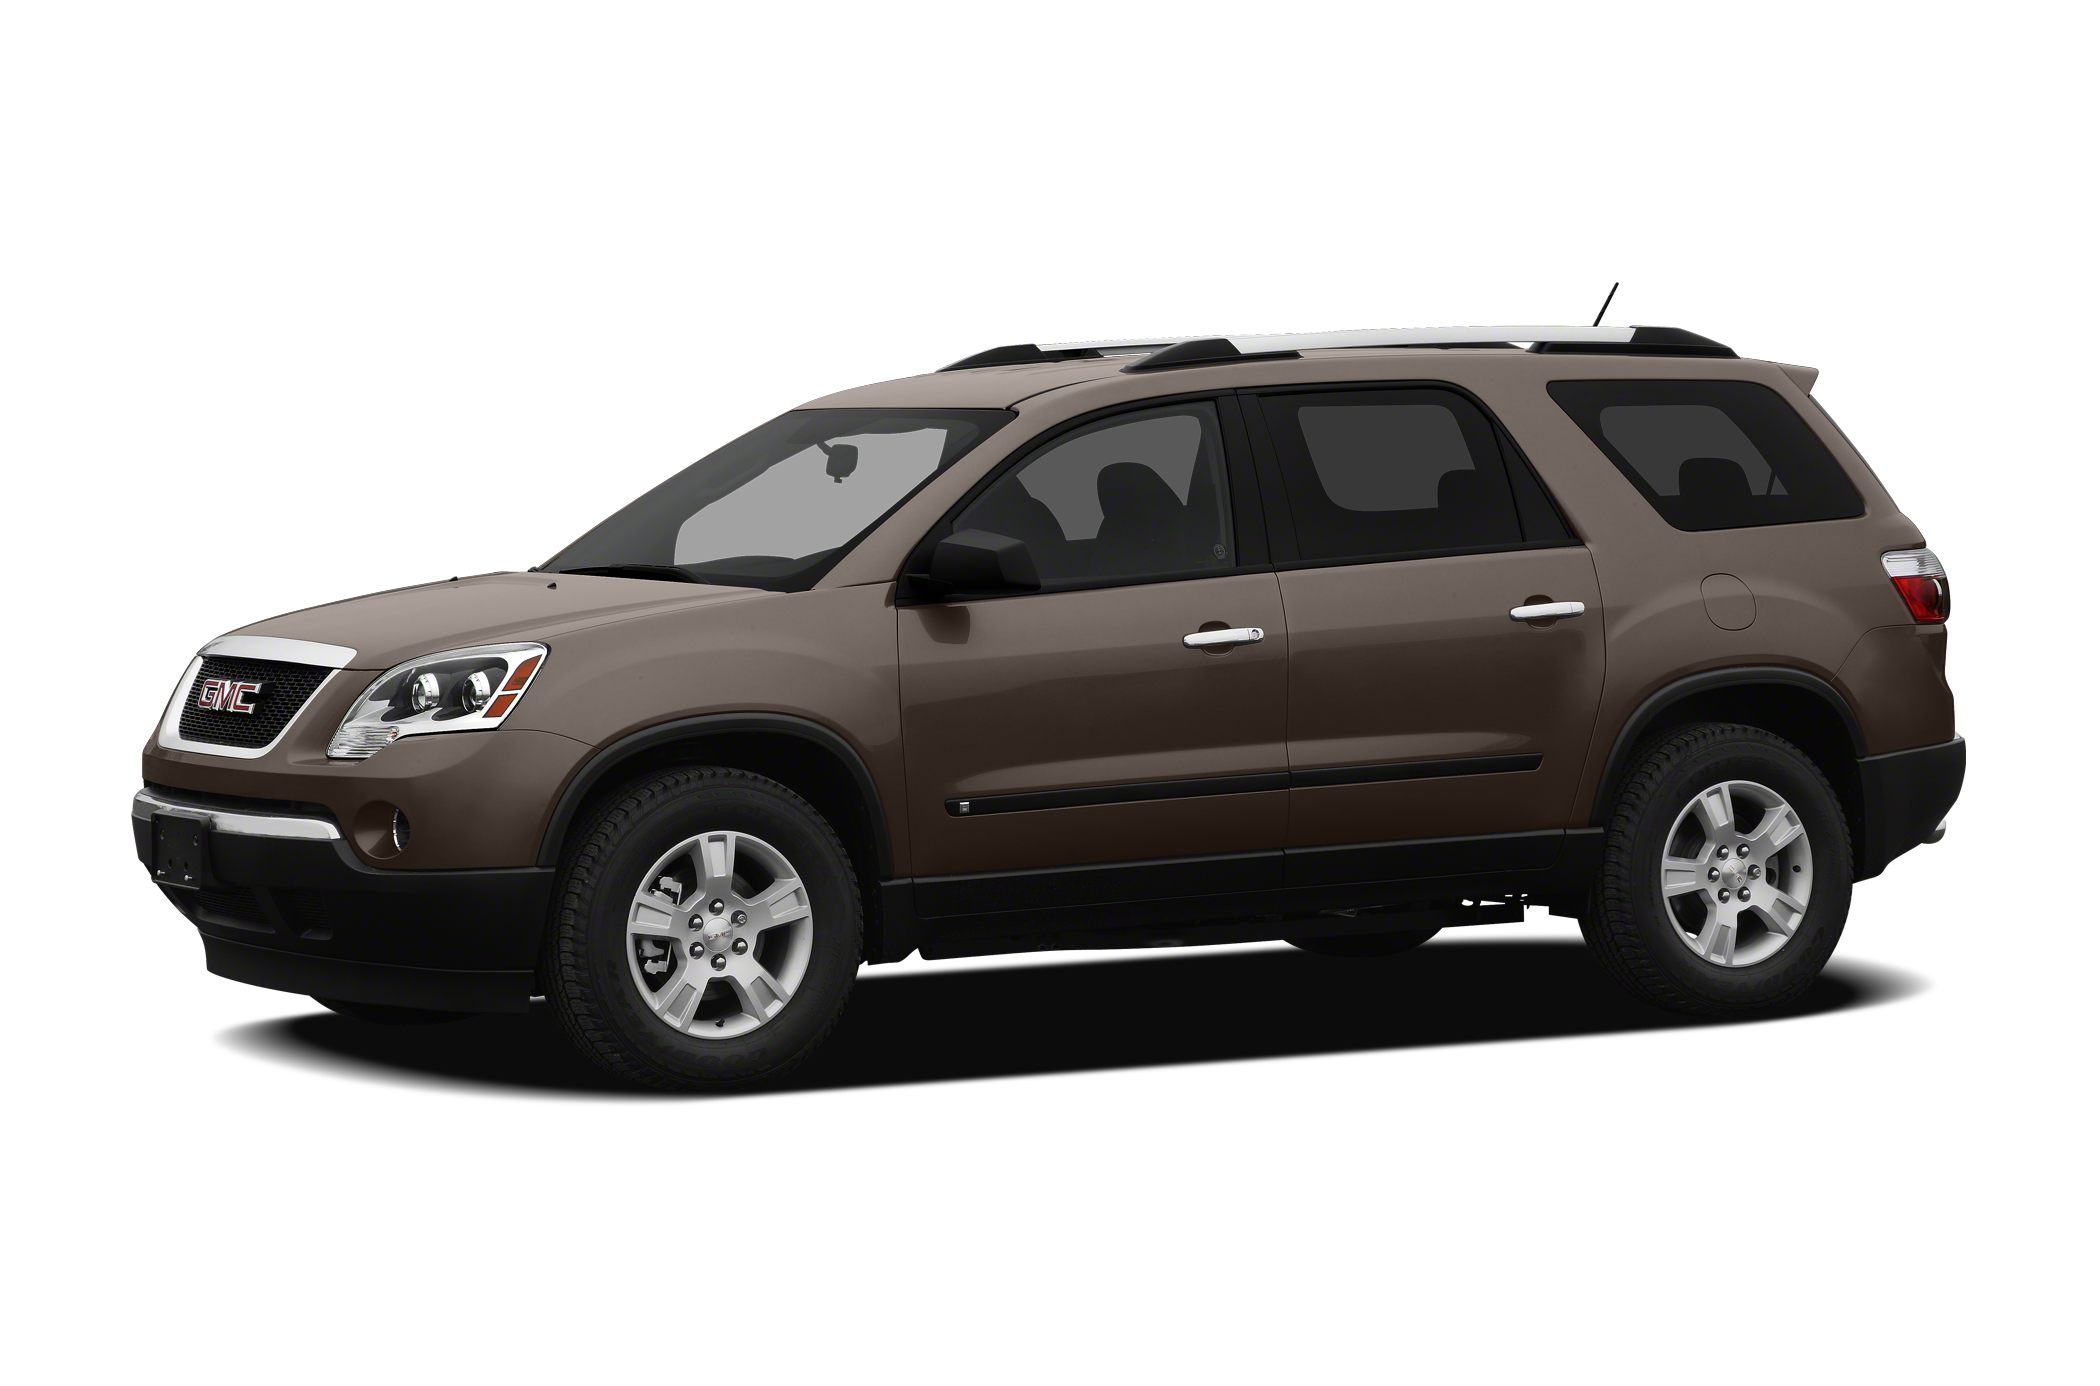 2012 GMC Acadia SLE SUV for sale in Tulsa for $23,970 with 41,378 miles